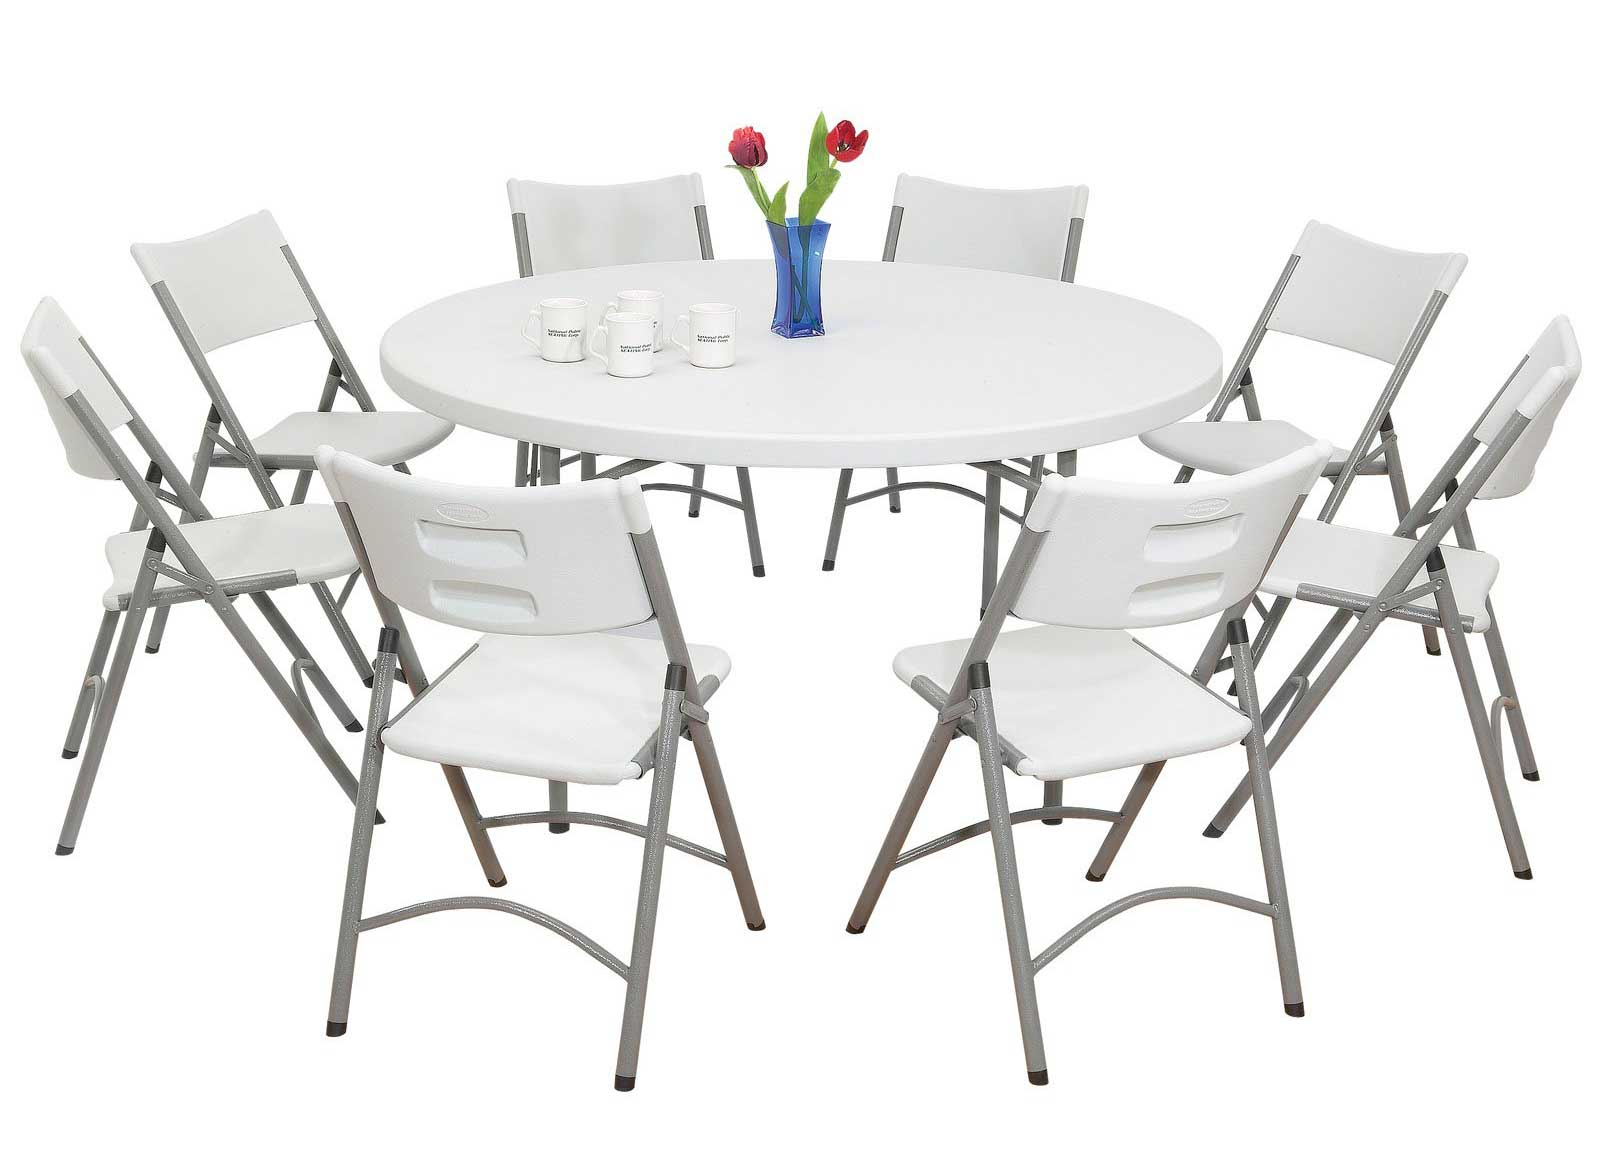 cheap folding tables and chairs wood desk chair round table benefit features